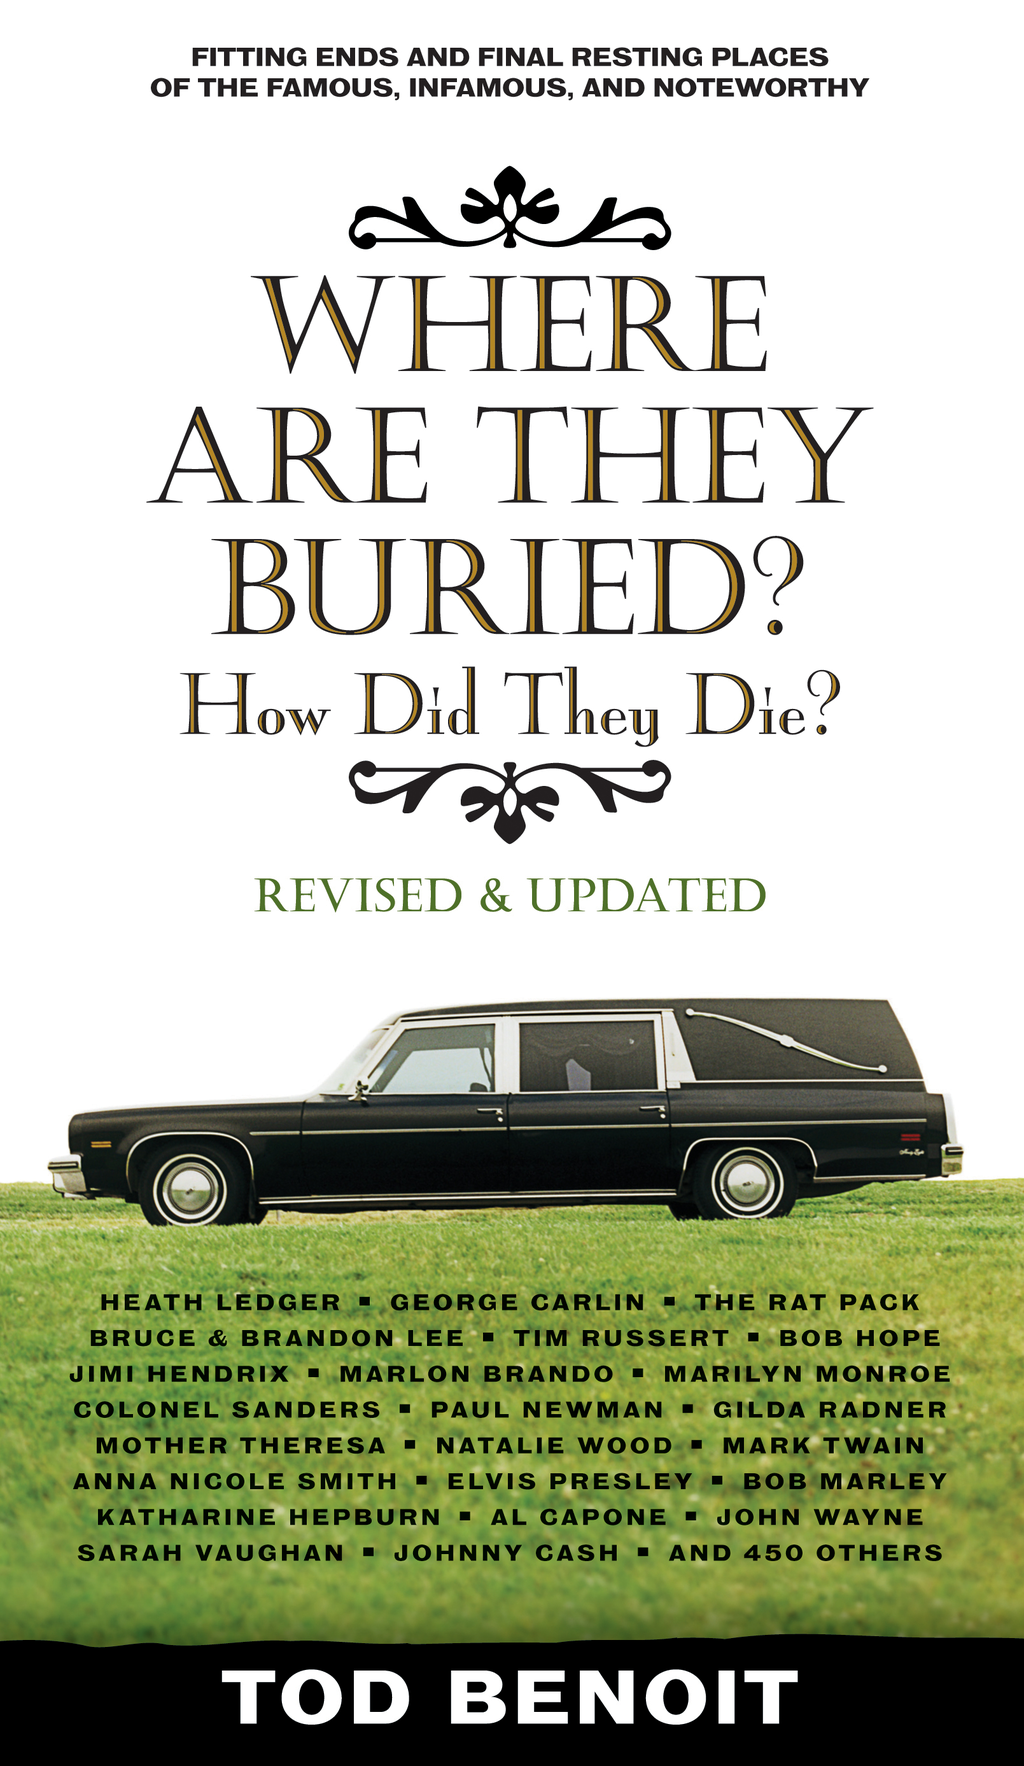 Where Are They Buried (Revised and Updated): How Did They Die? Fitting Ends and Final Resting Places of the Famous  Infamous  and Noteworthy By: Tod Benoit